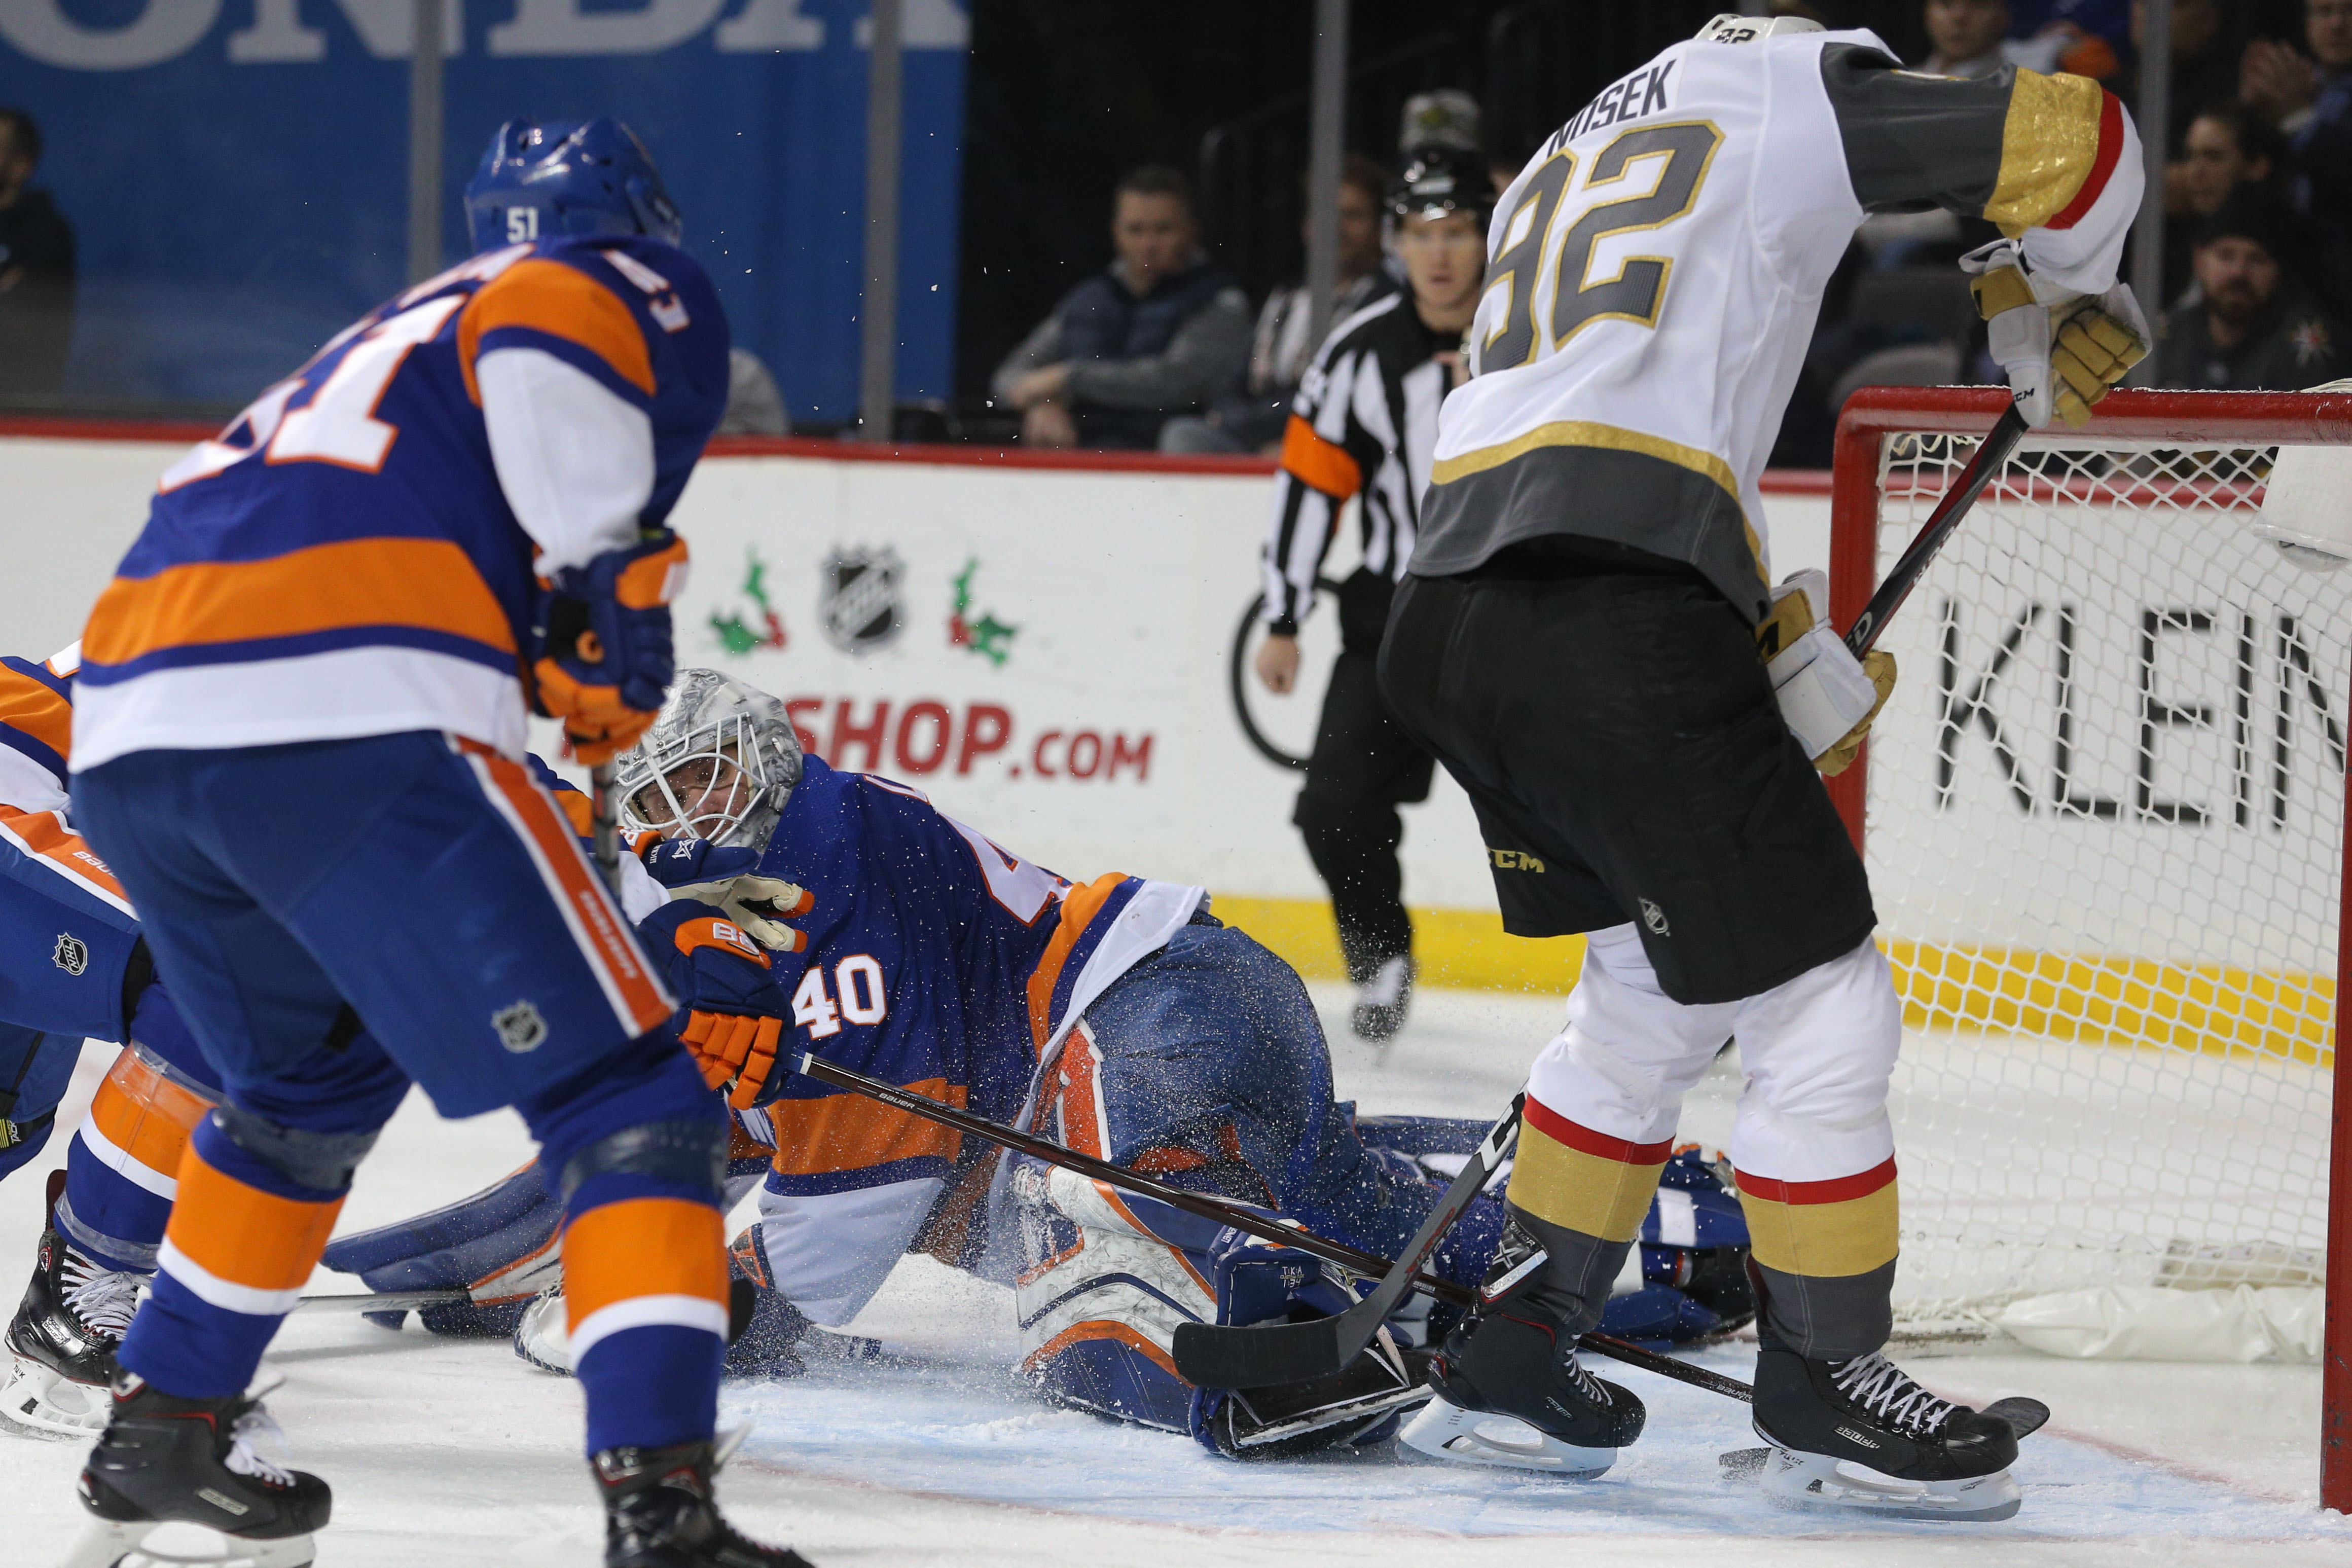 Dec 12, 2018; Brooklyn, NY, USA; Vegas Golden Knights center Tomas Nosek (92) scores the game winning goal past New York Islanders goalie Robin Lehner (40) during the third period at Barclays Center. Mandatory Credit: Brad Penner-USA TODAY Sports